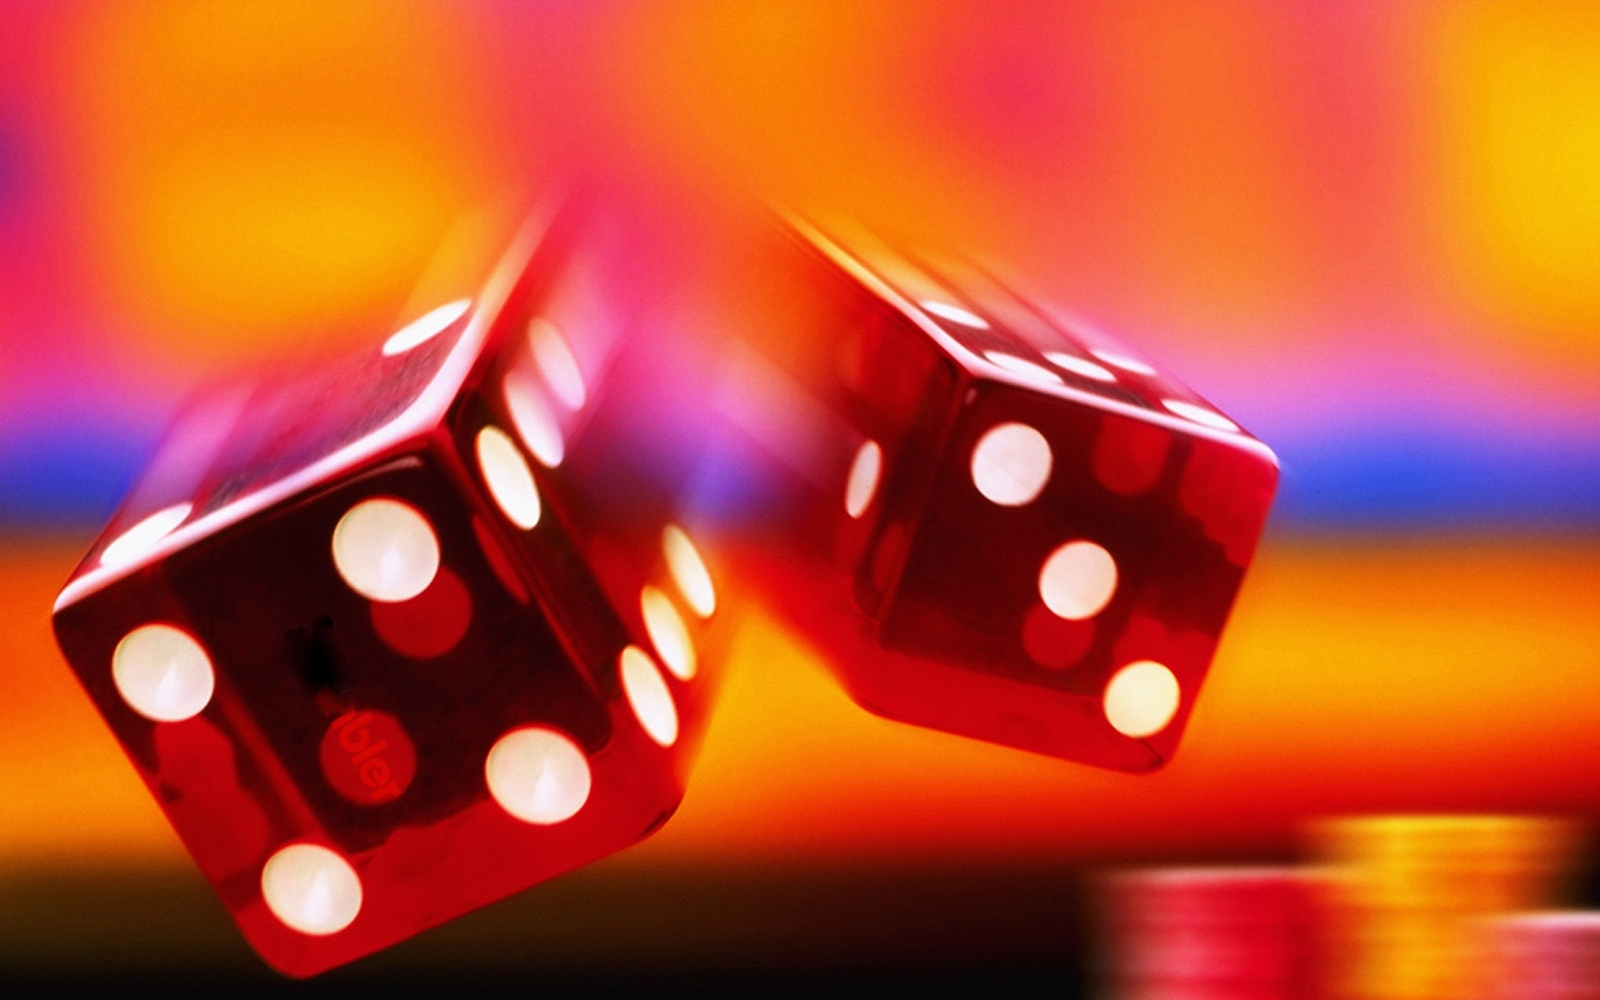 Dice wallpaper and background image 1600x1000 id - Dice wallpaper ...